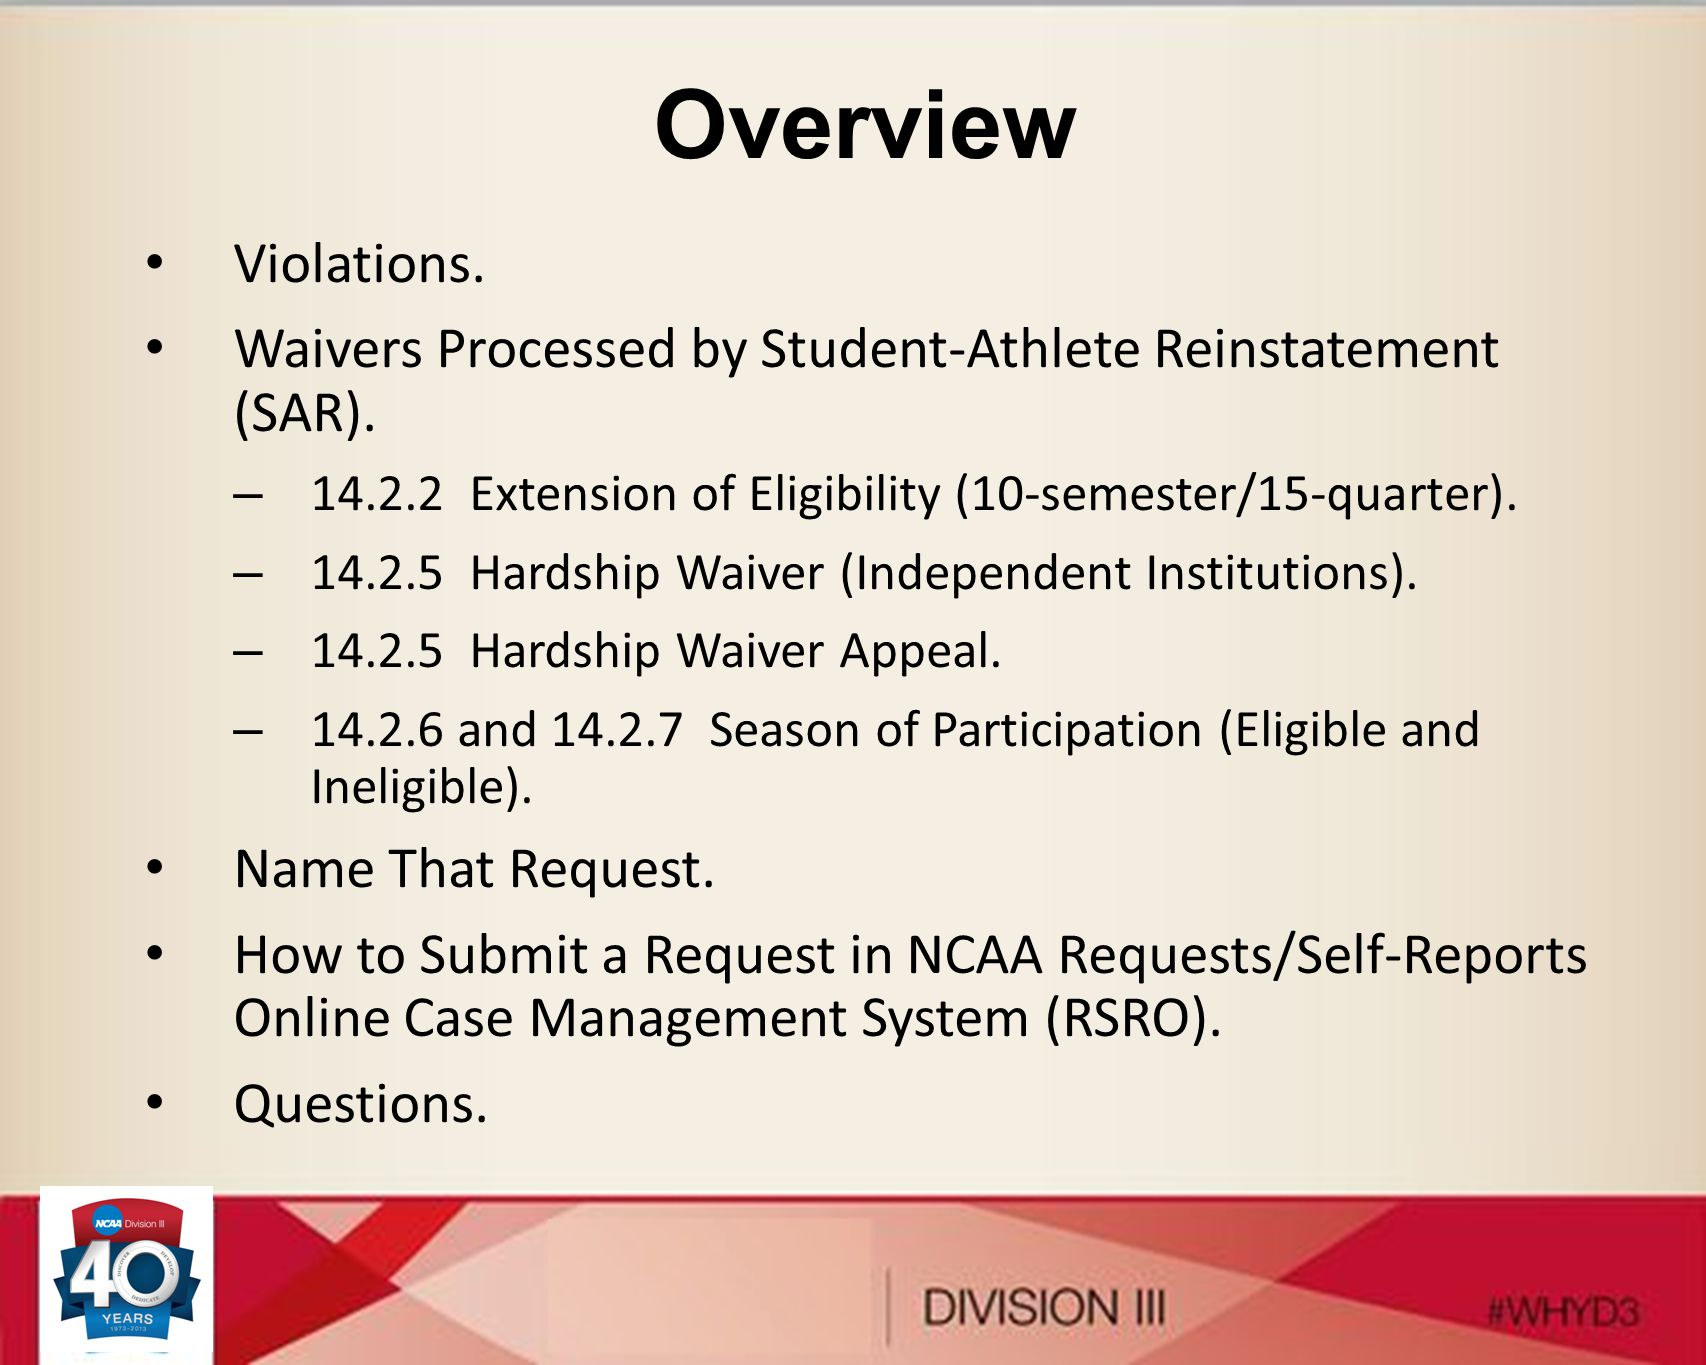 Overview Violations. Waivers Processed by Student-Athlete Reinstatement (SAR). 14.2.2 Extension of Eligibility (10-semester/15-quarter).